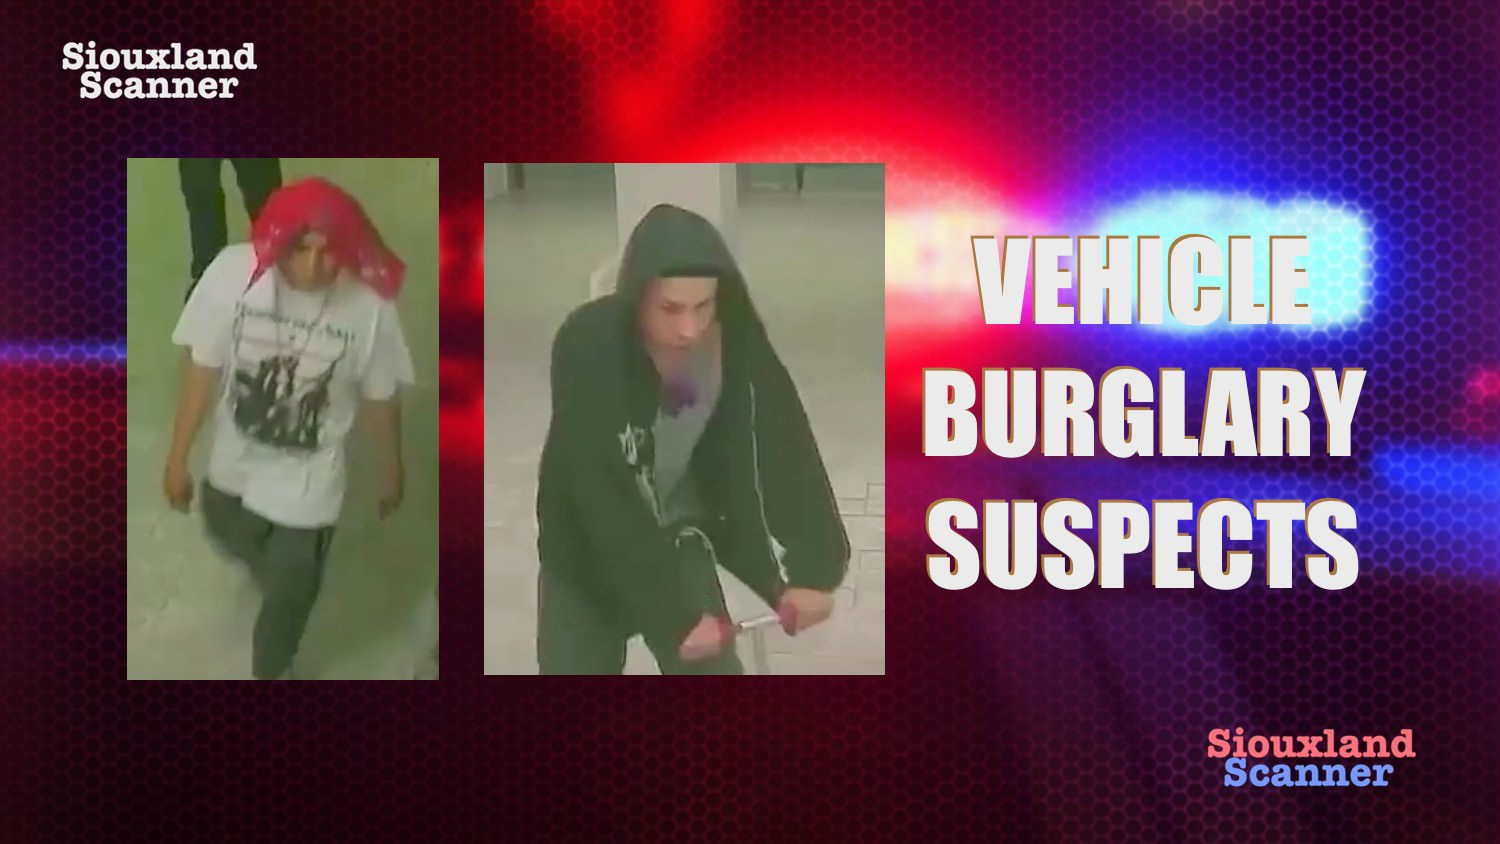 Do you know these suspected car burglary suspects